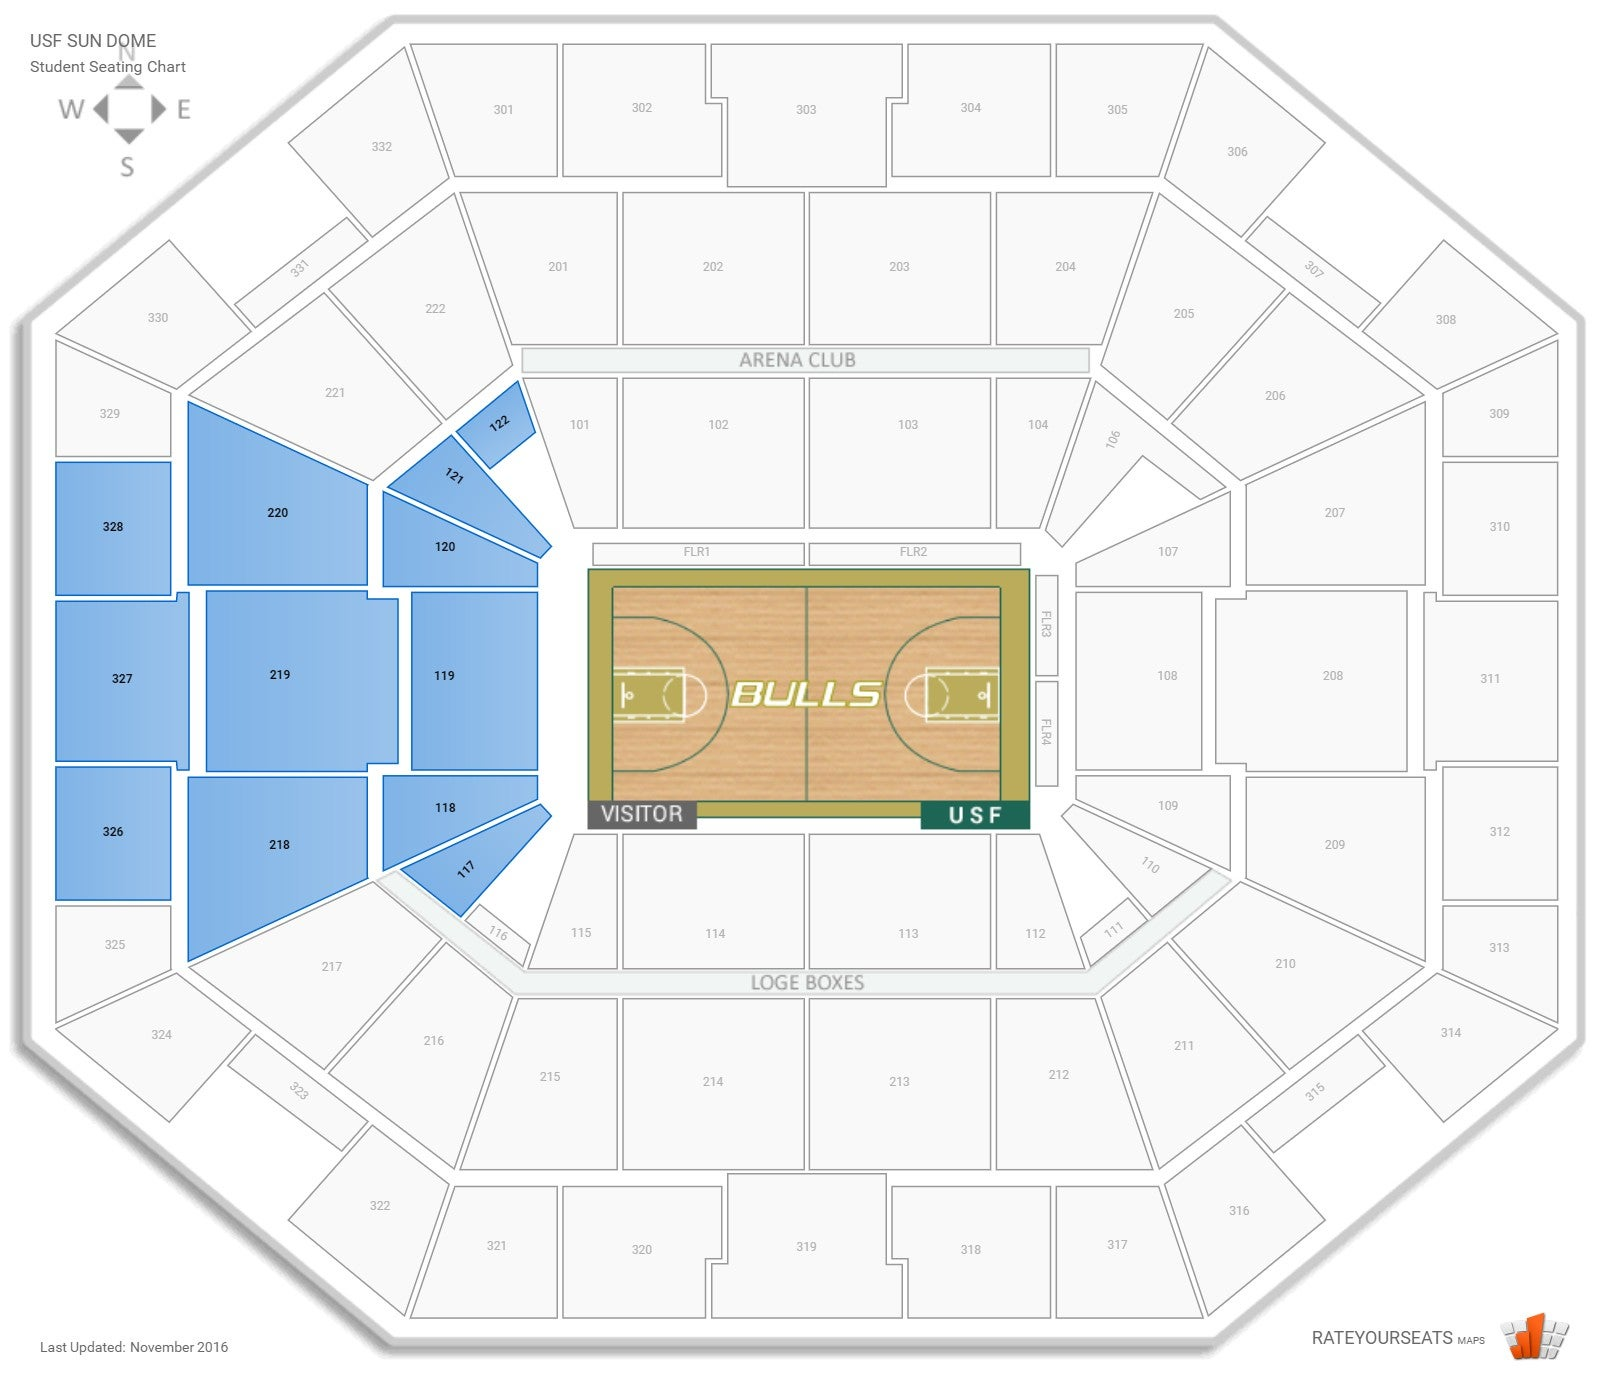 Seating charts yuengling center